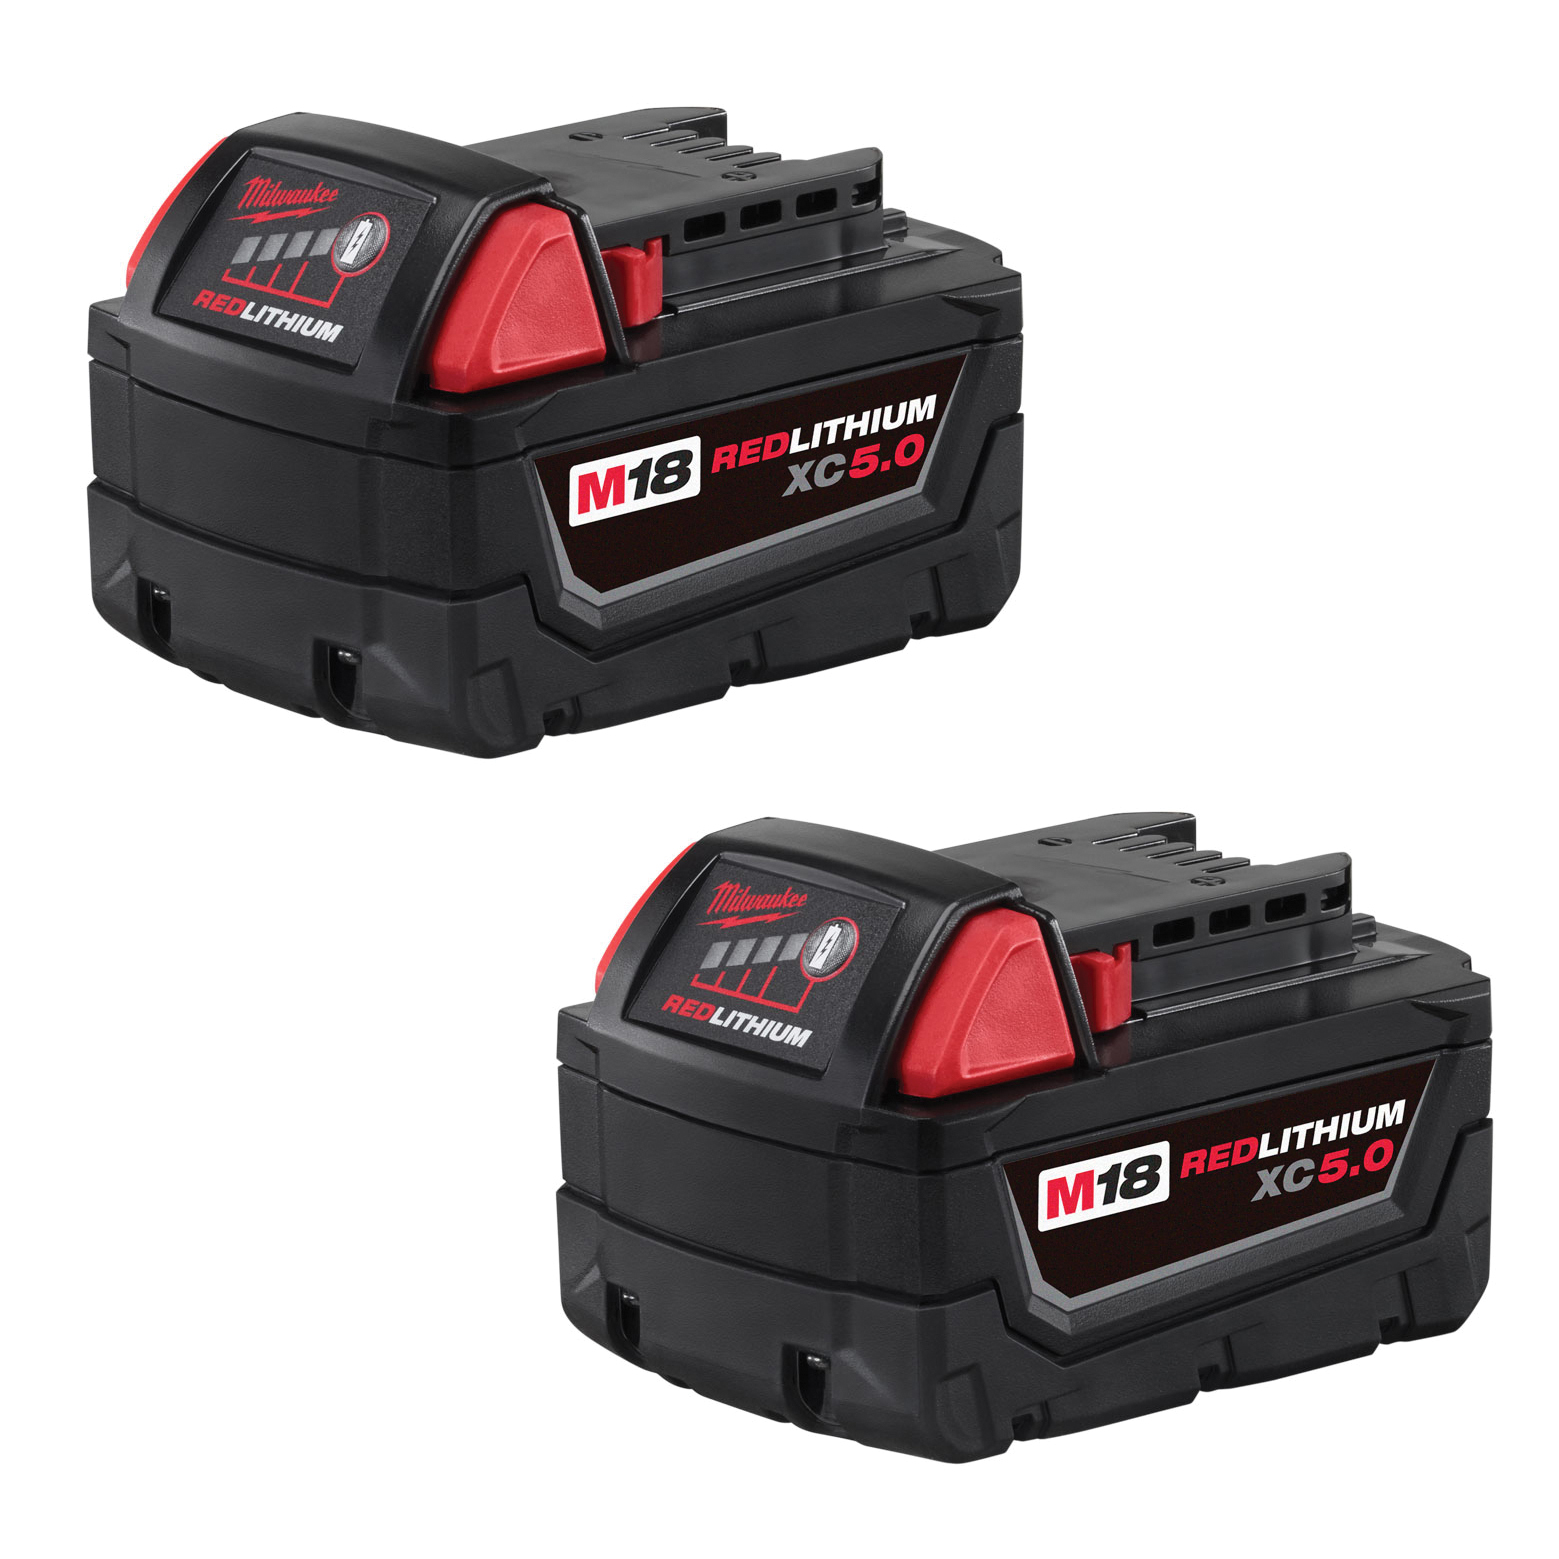 Picture of Milwaukee M18 REDLITHIUM 48-11-1852 Battery Pack, 18 V Battery, 5 Ah, 2